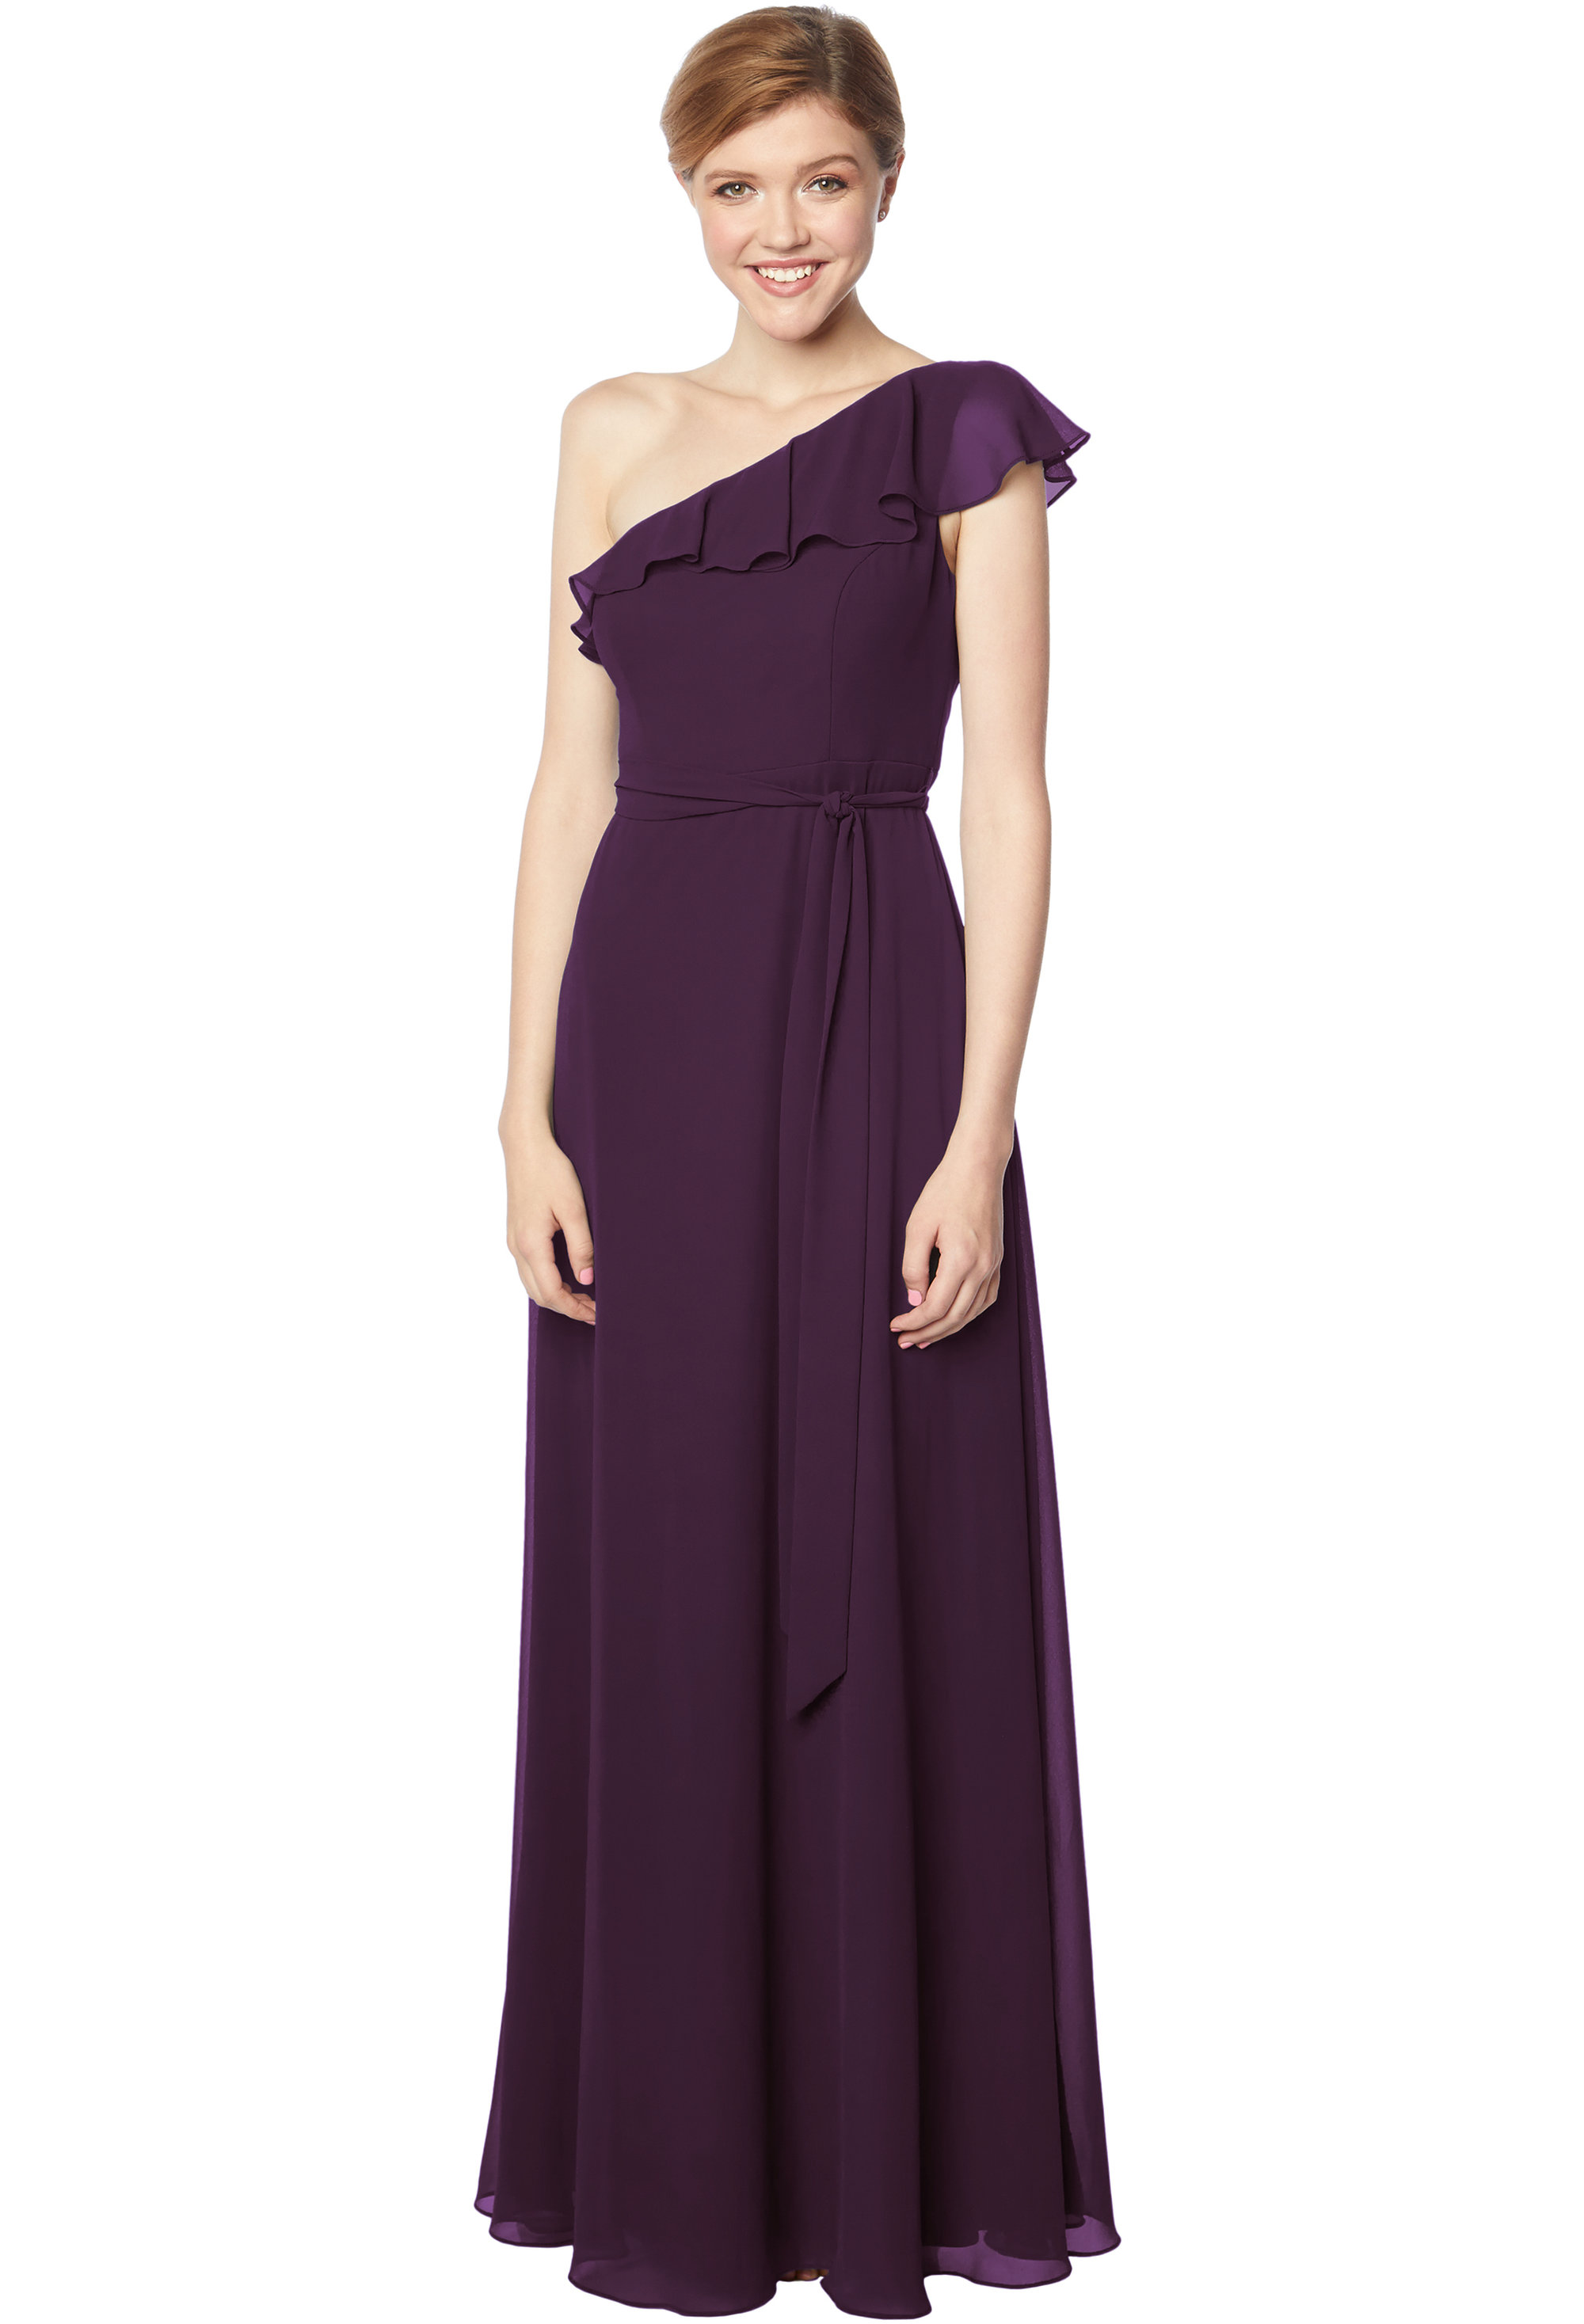 Bill Levkoff PLUM Chiffon One Shoulder A-line gown, $178.00 Front